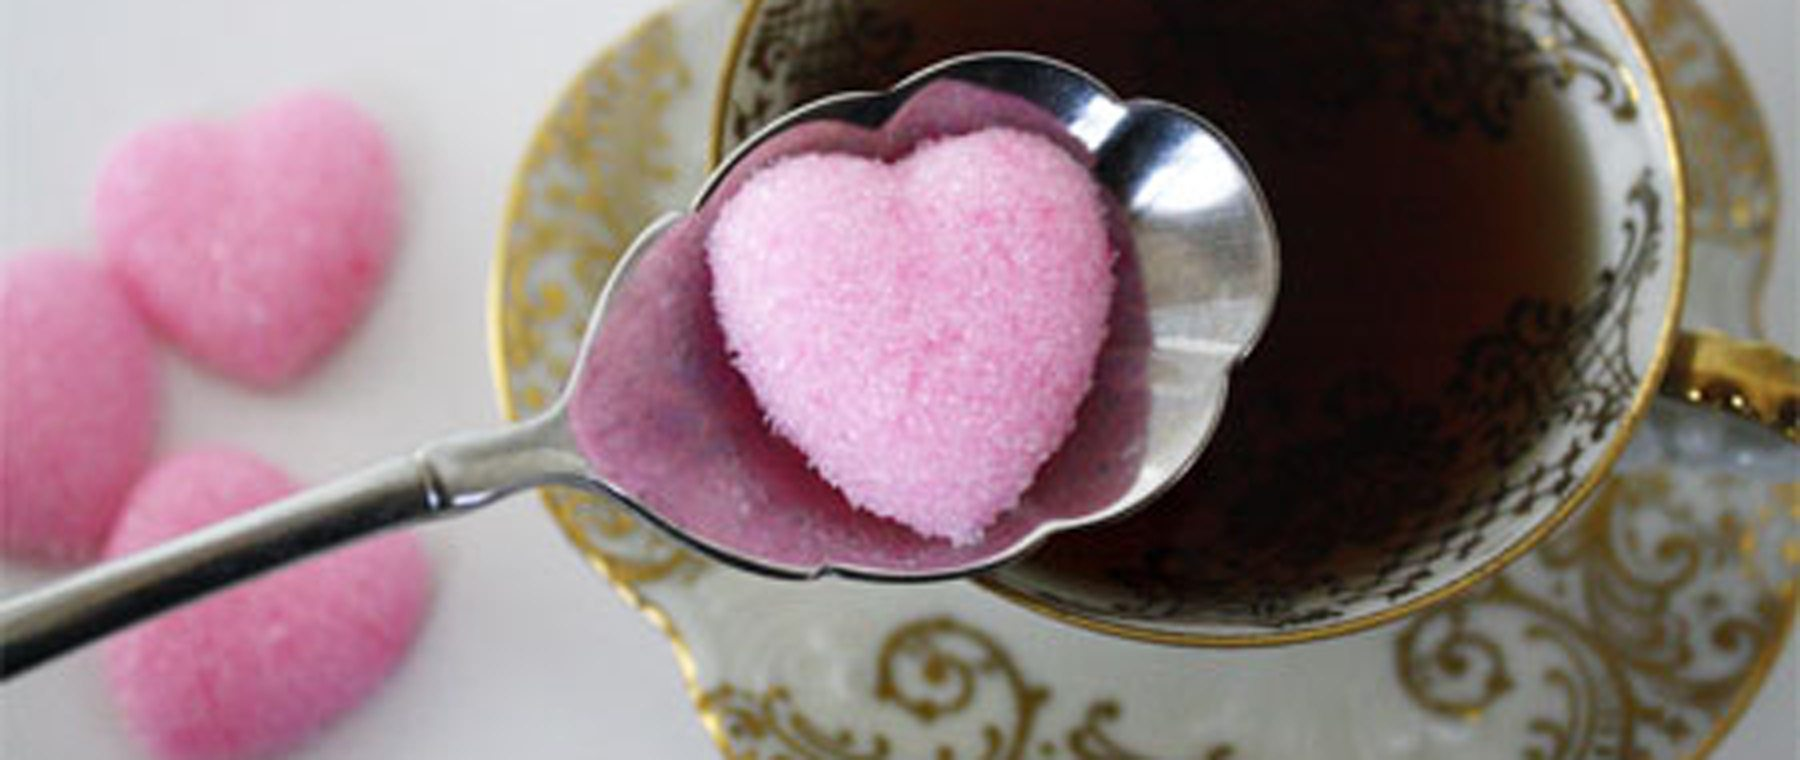 homemade-heart-sugar-cubescrop